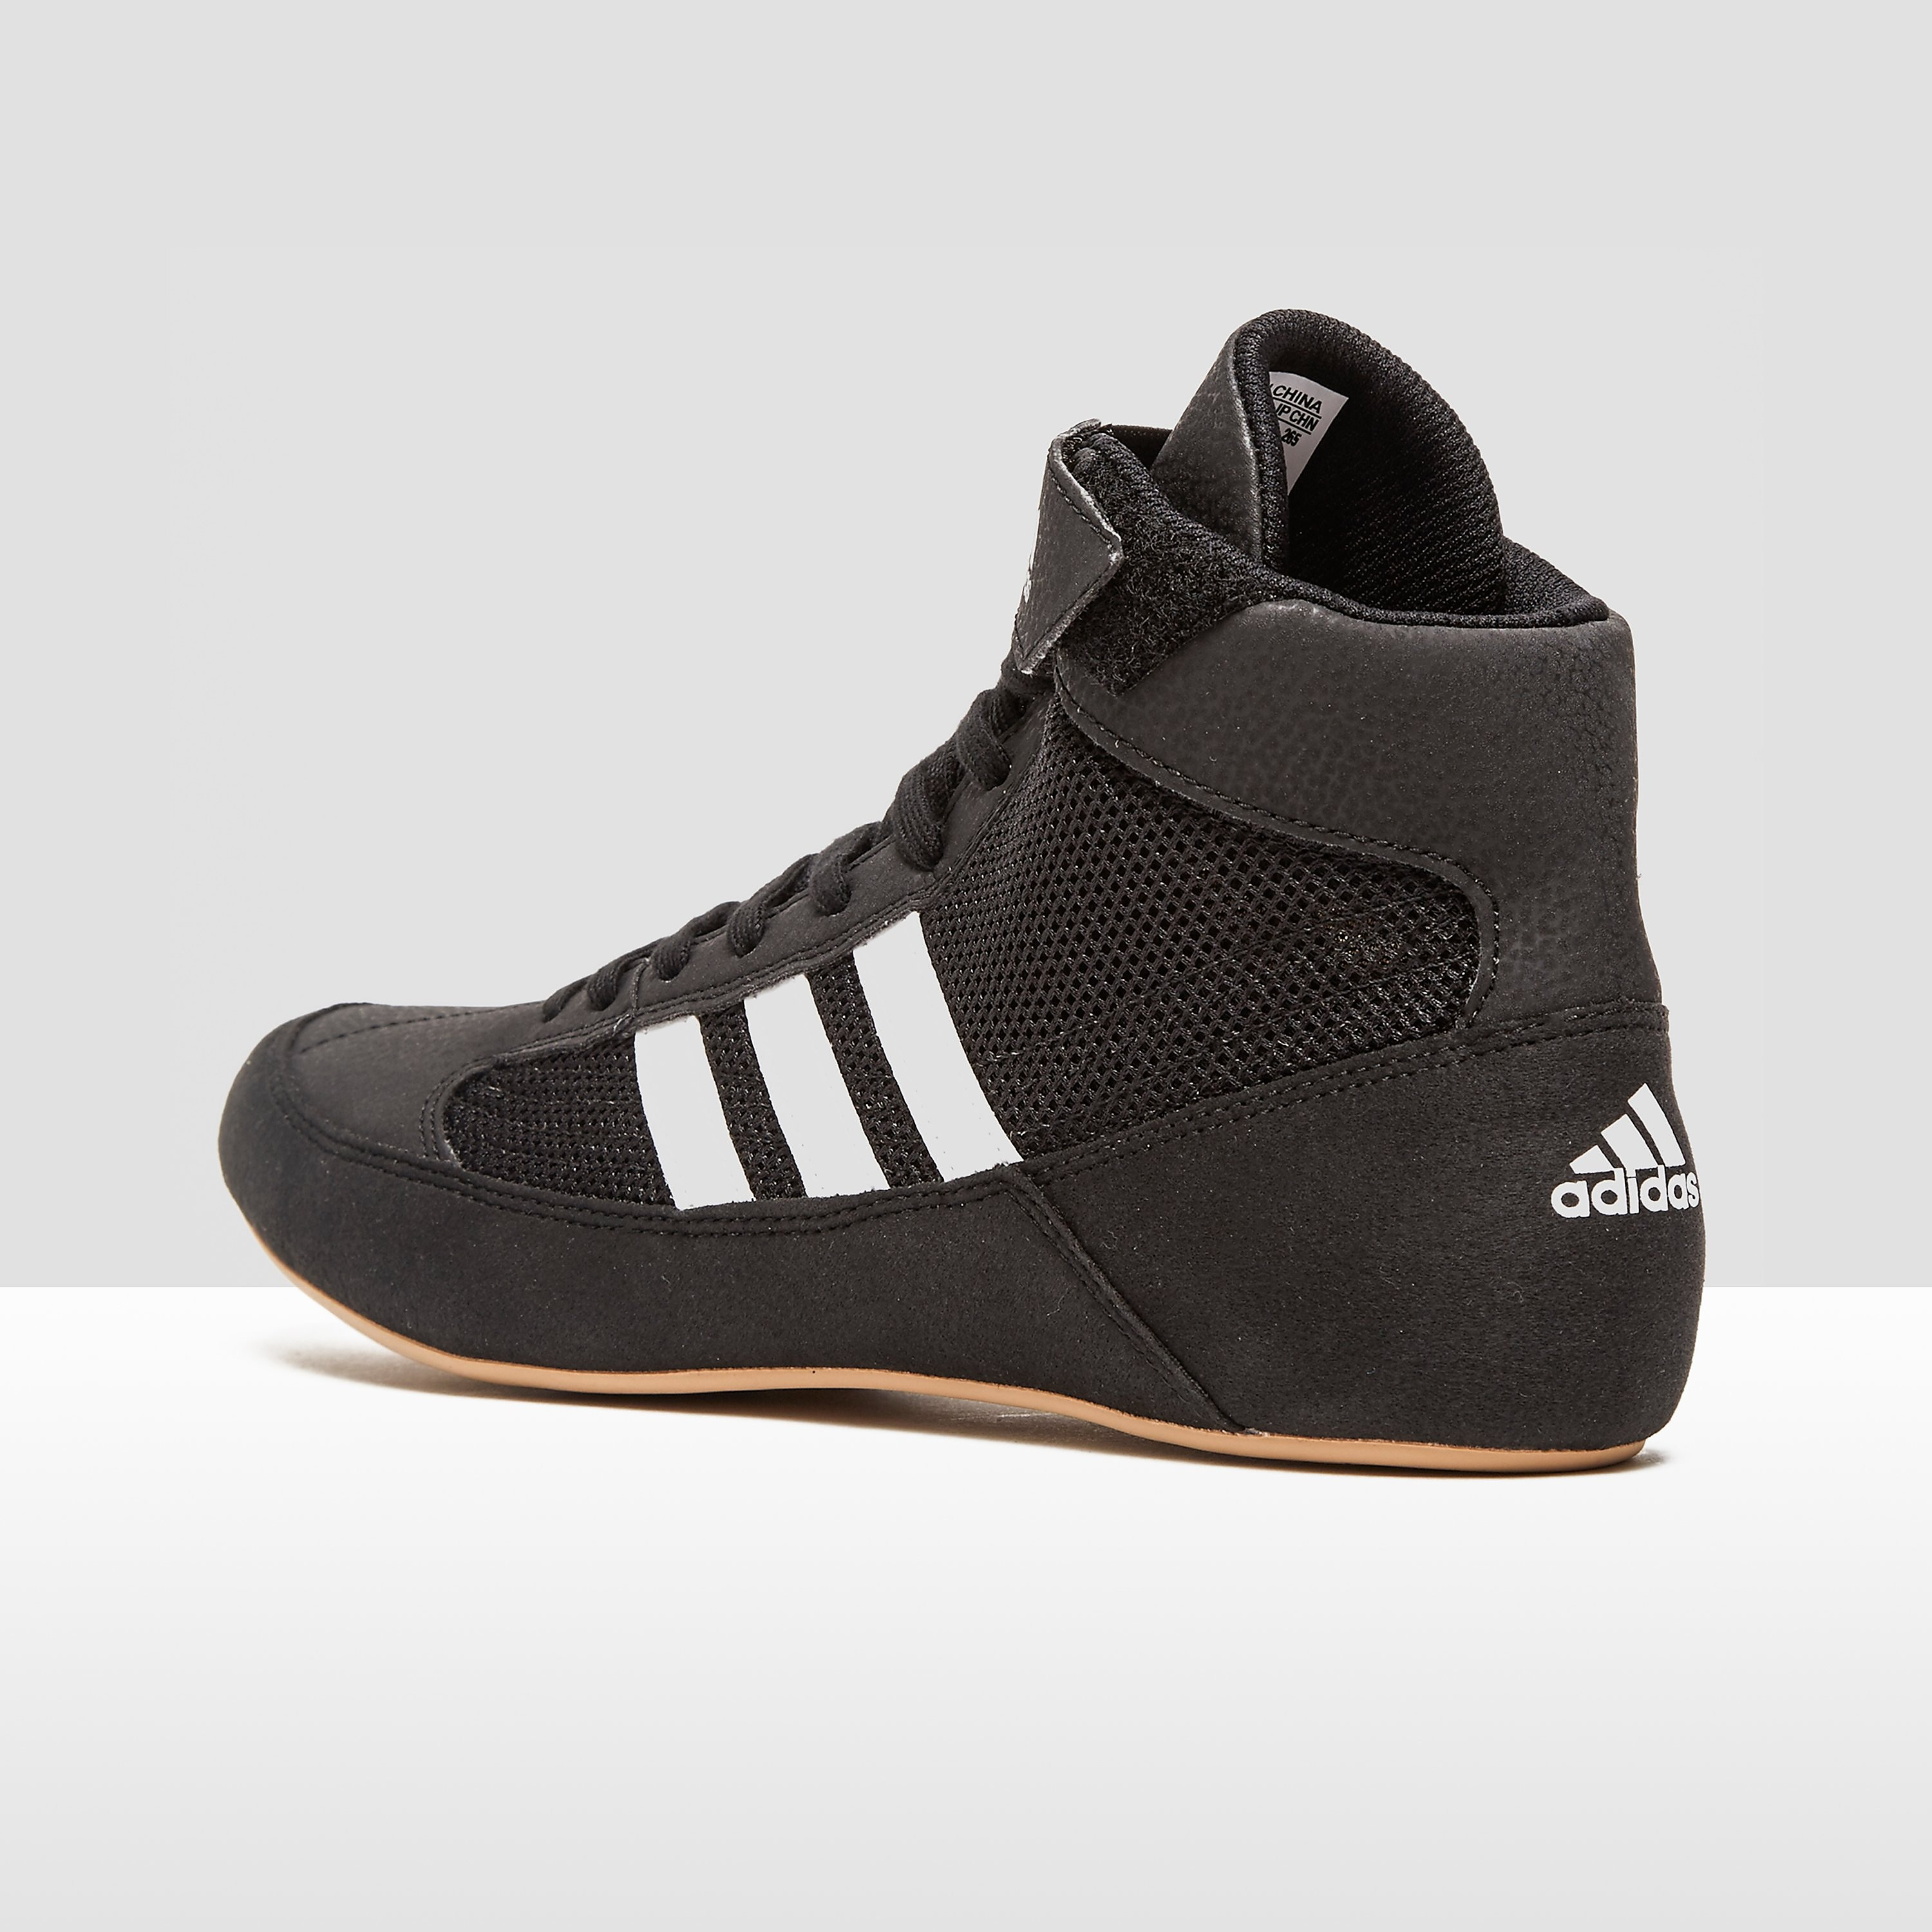 adidas Havoc Men's Wrestling Boots